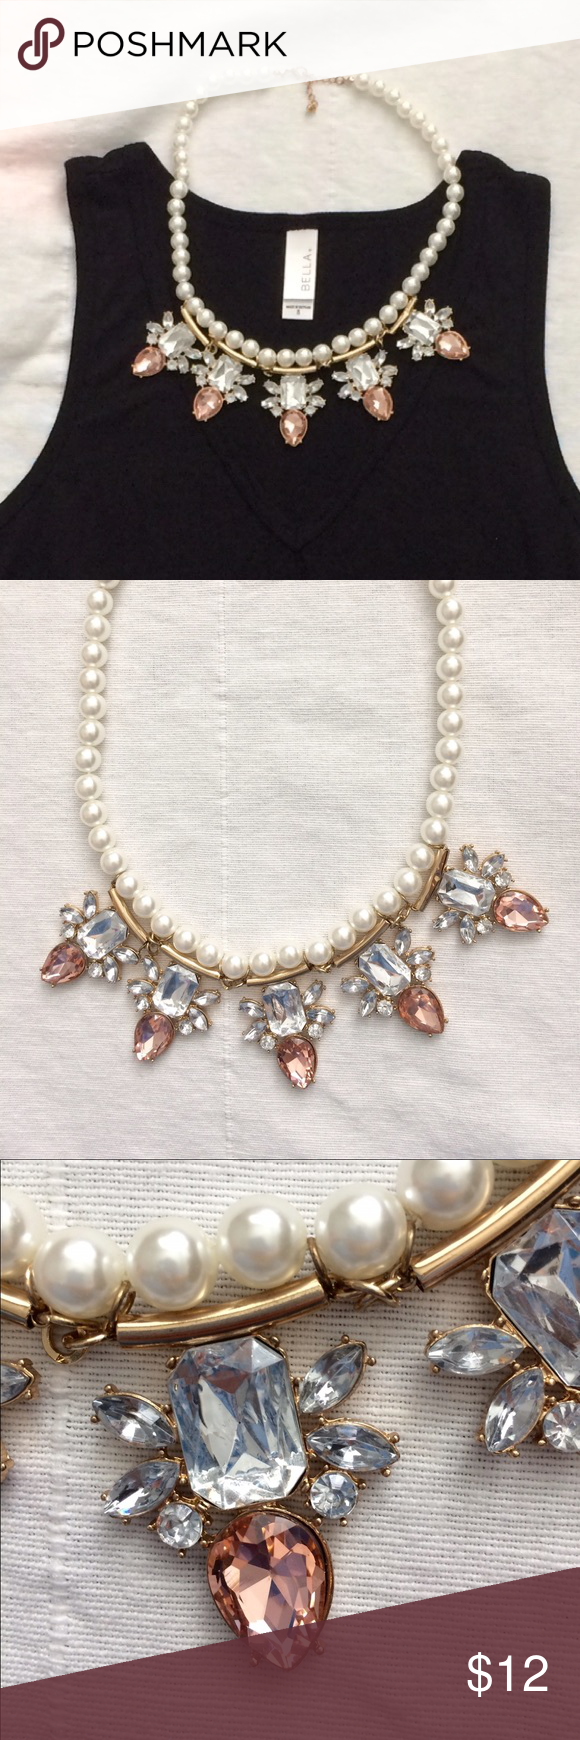 Faux Pearl Statement Necklace w/ Pink Rhinestones Statement Necklace designed with shiny floral rhinestone pendants and light pink jewels for added glamour. Faux pearls for a touch of class! Jewelry Necklaces